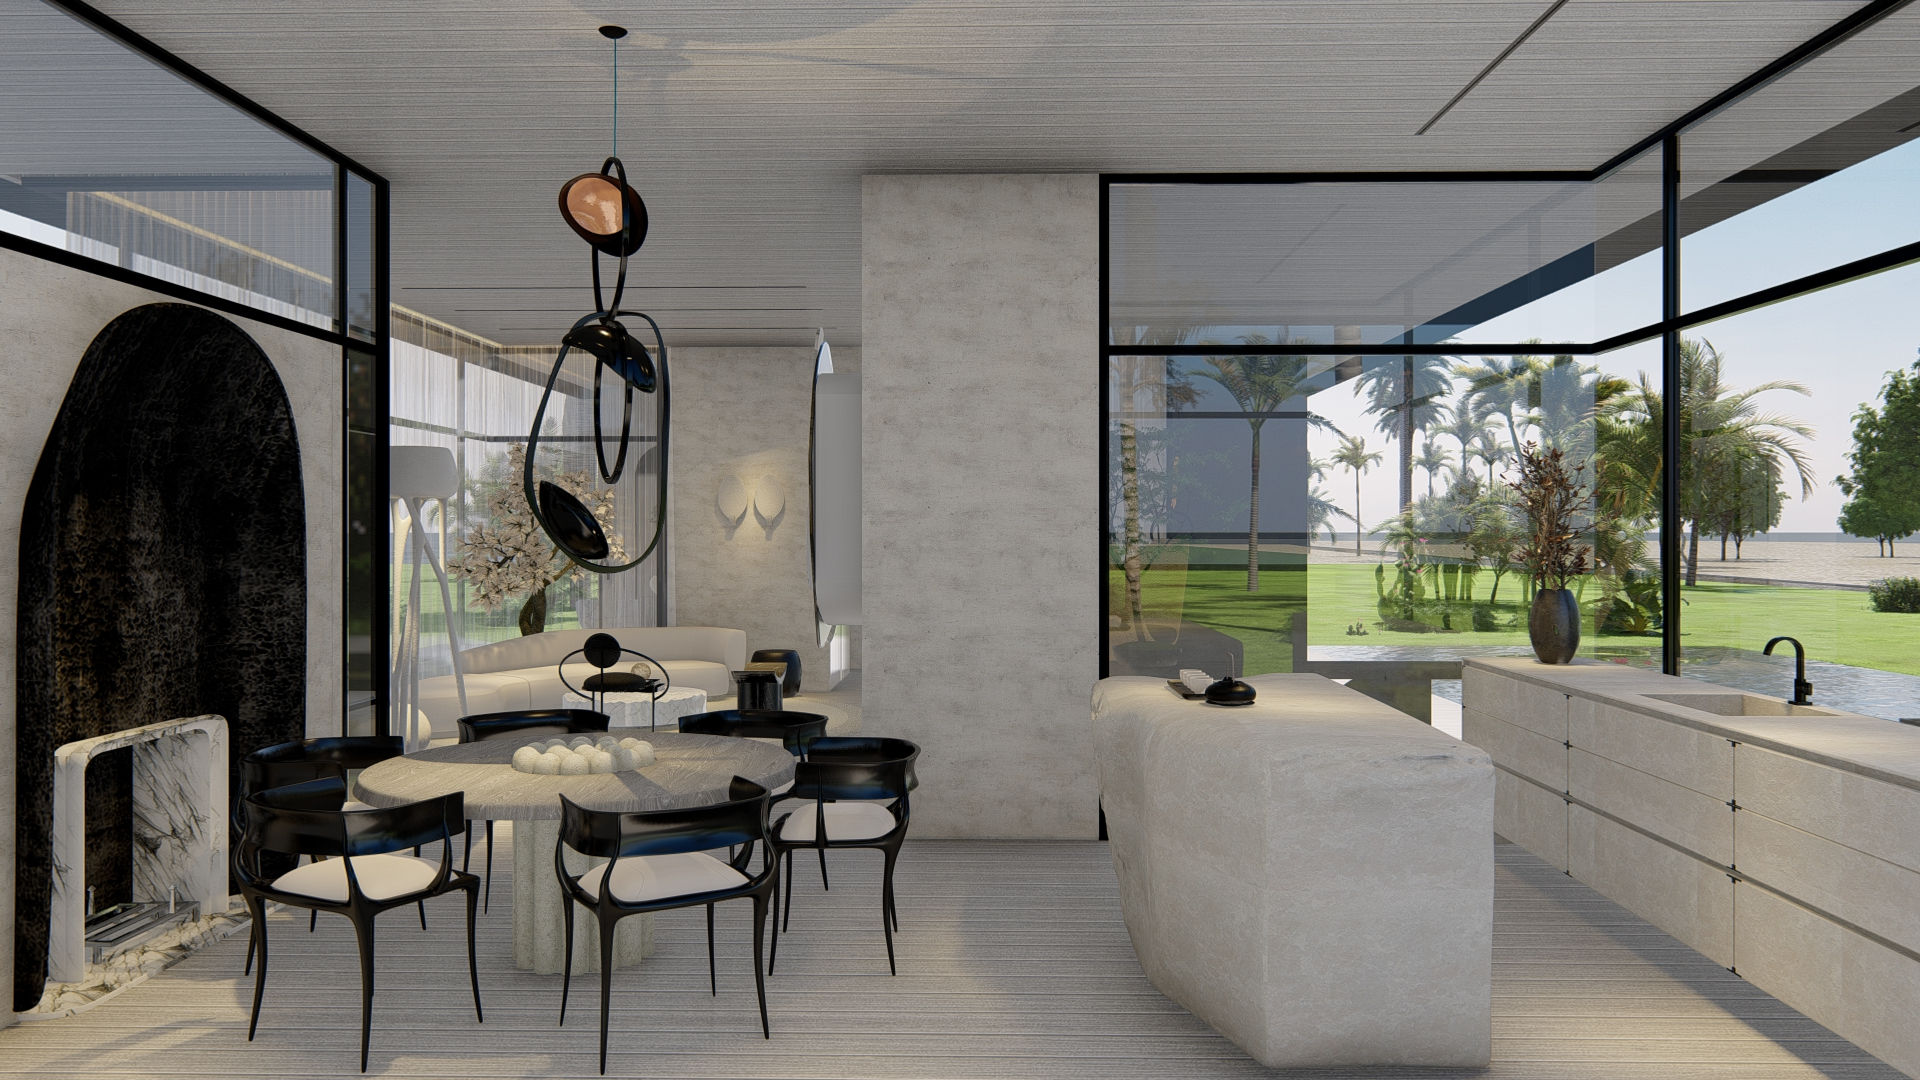 rendering of minimalistic kitchen and dining area